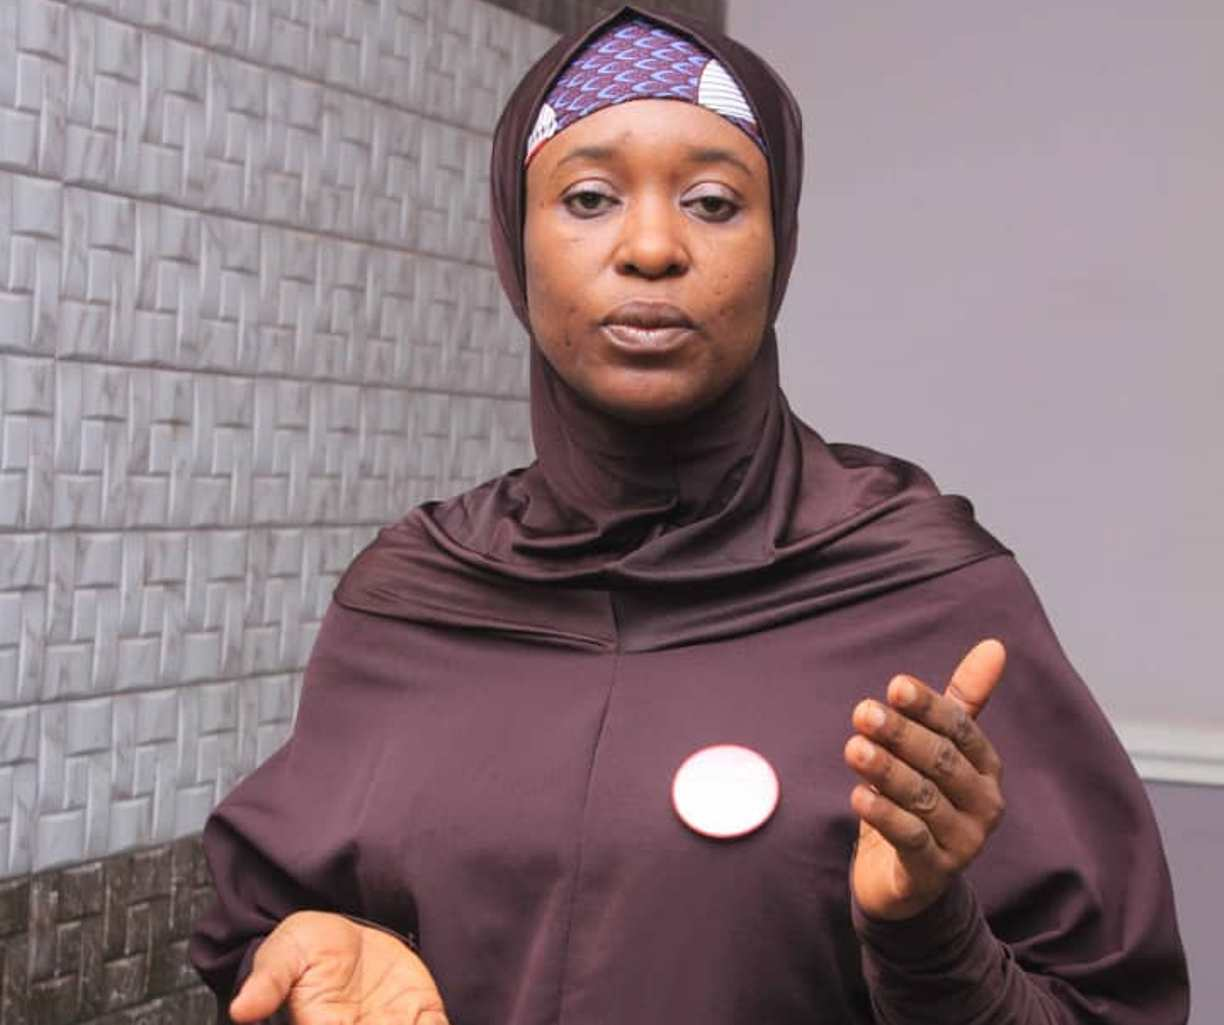 ENDSARS CLAMPDOWN: The police promoted officer accused of torturing someone to death — Aisha Yesufu